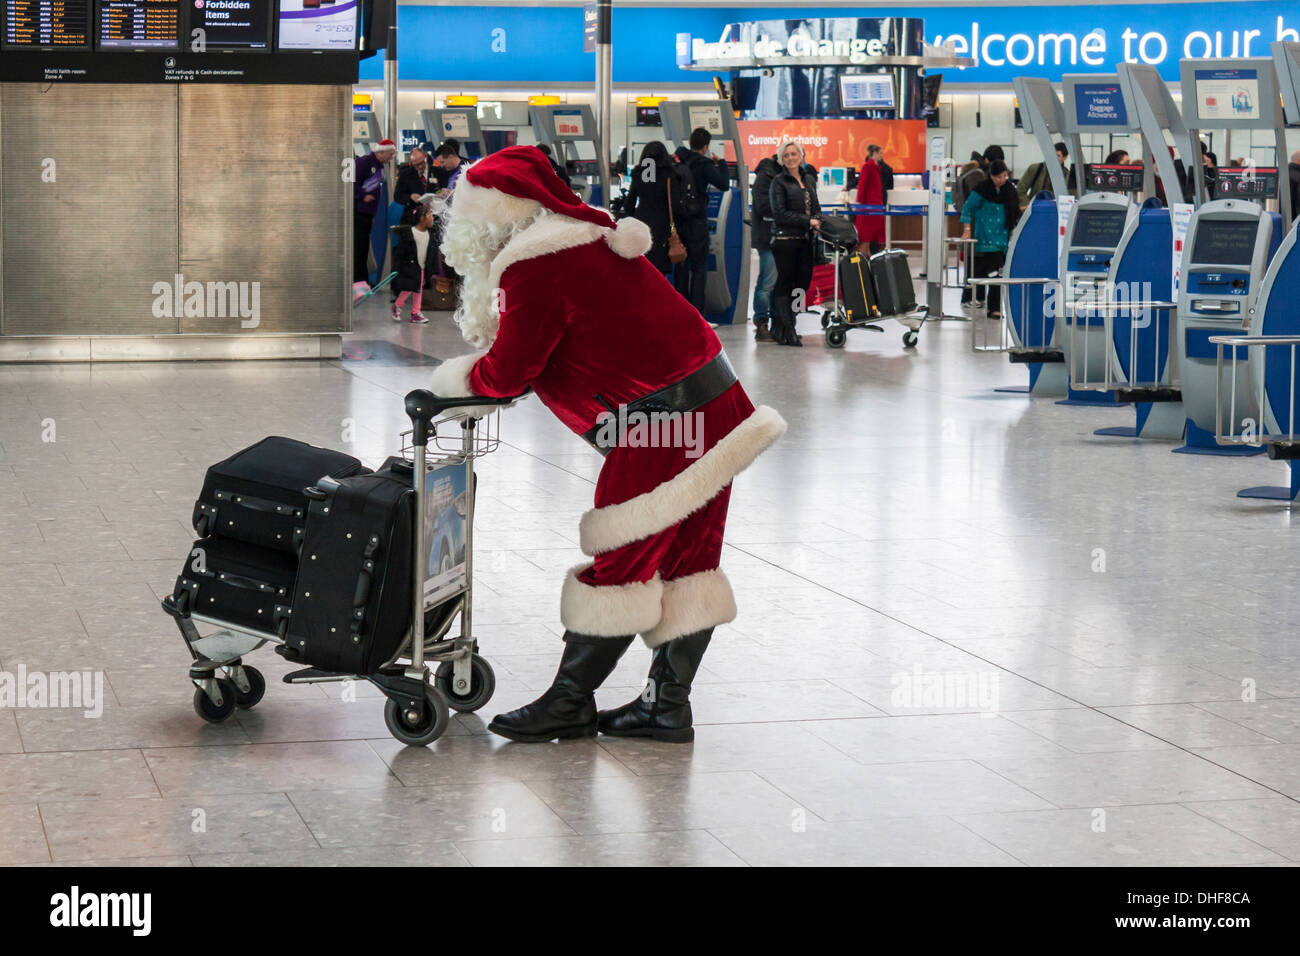 Father Christmas waits at T5 Heathrow Airport, London.  Christmas travel delays concept. - Stock Image